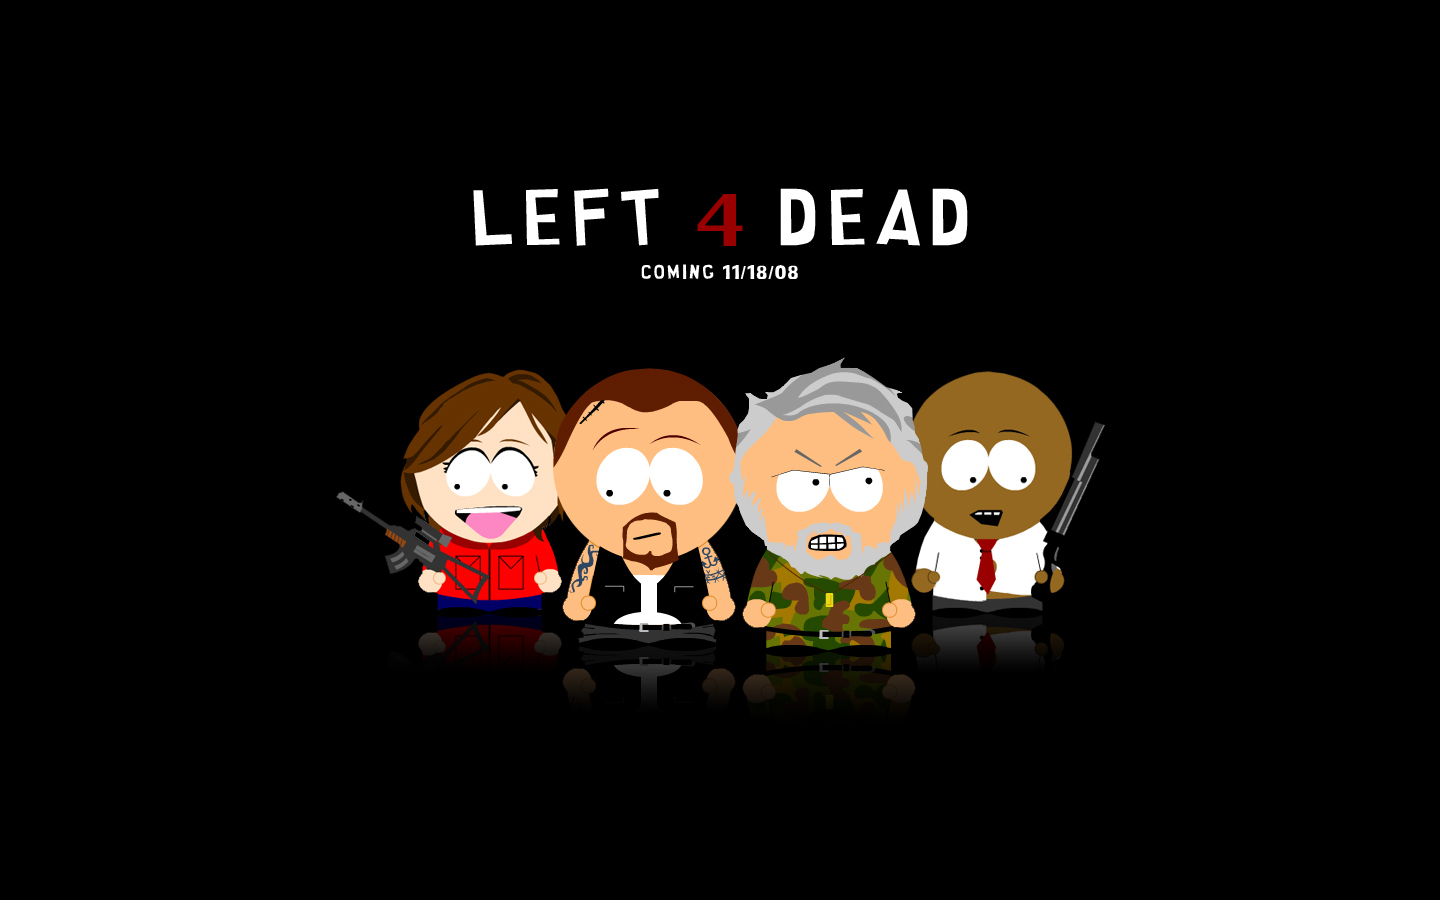 Left 4 Dead characters South park animated version south park 22035991 1440 900